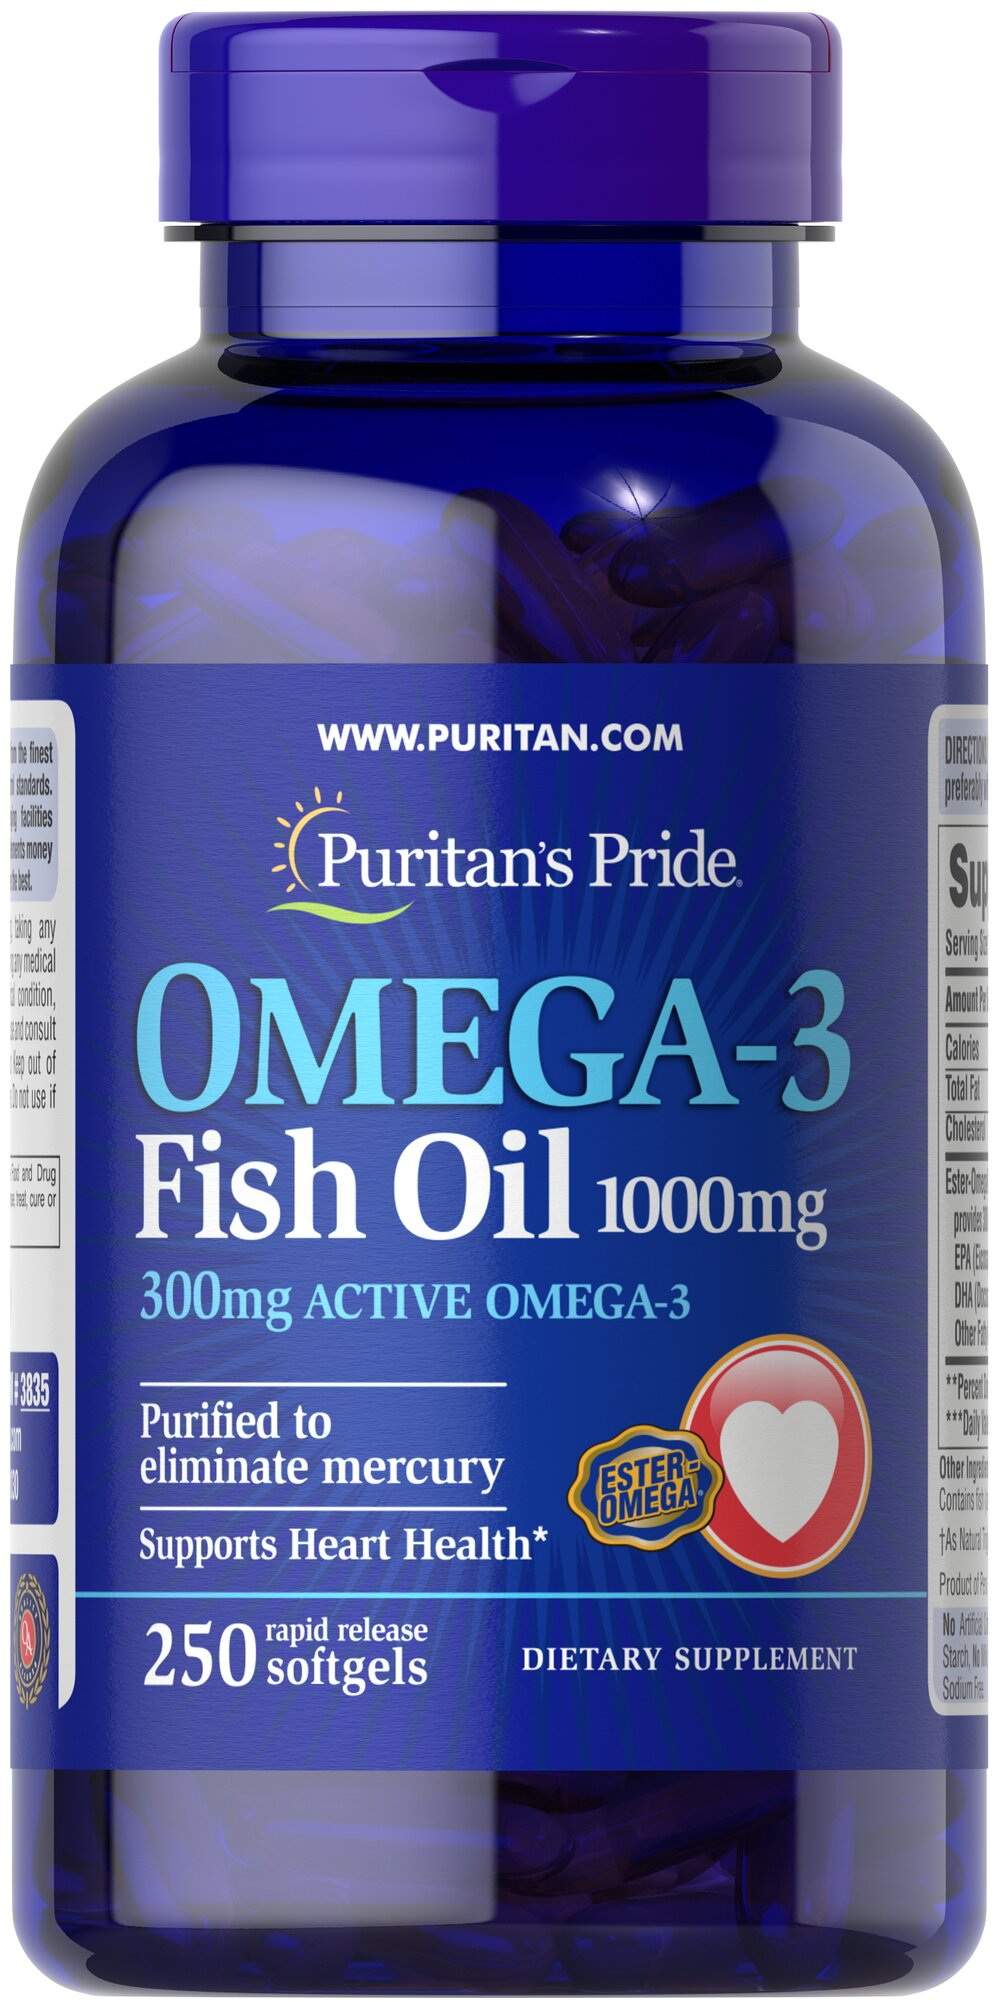 "Omega-3 Fish Oil 1000 mg <p><span></span>Provides 300mg of active Omega-3.</p><p><span></span>Supports heart health.**</p><p><span></span>Purified to eliminate mercury.</p><p>This Ester-Omega® Fish Oil provides 300mg of total omega-3 fatty acids, comprising of EPA, DHA and other fatty acids. EPA and DHA fatty acids support heart health, provide an energy source for your body and are ""good"" fats that can help balan"